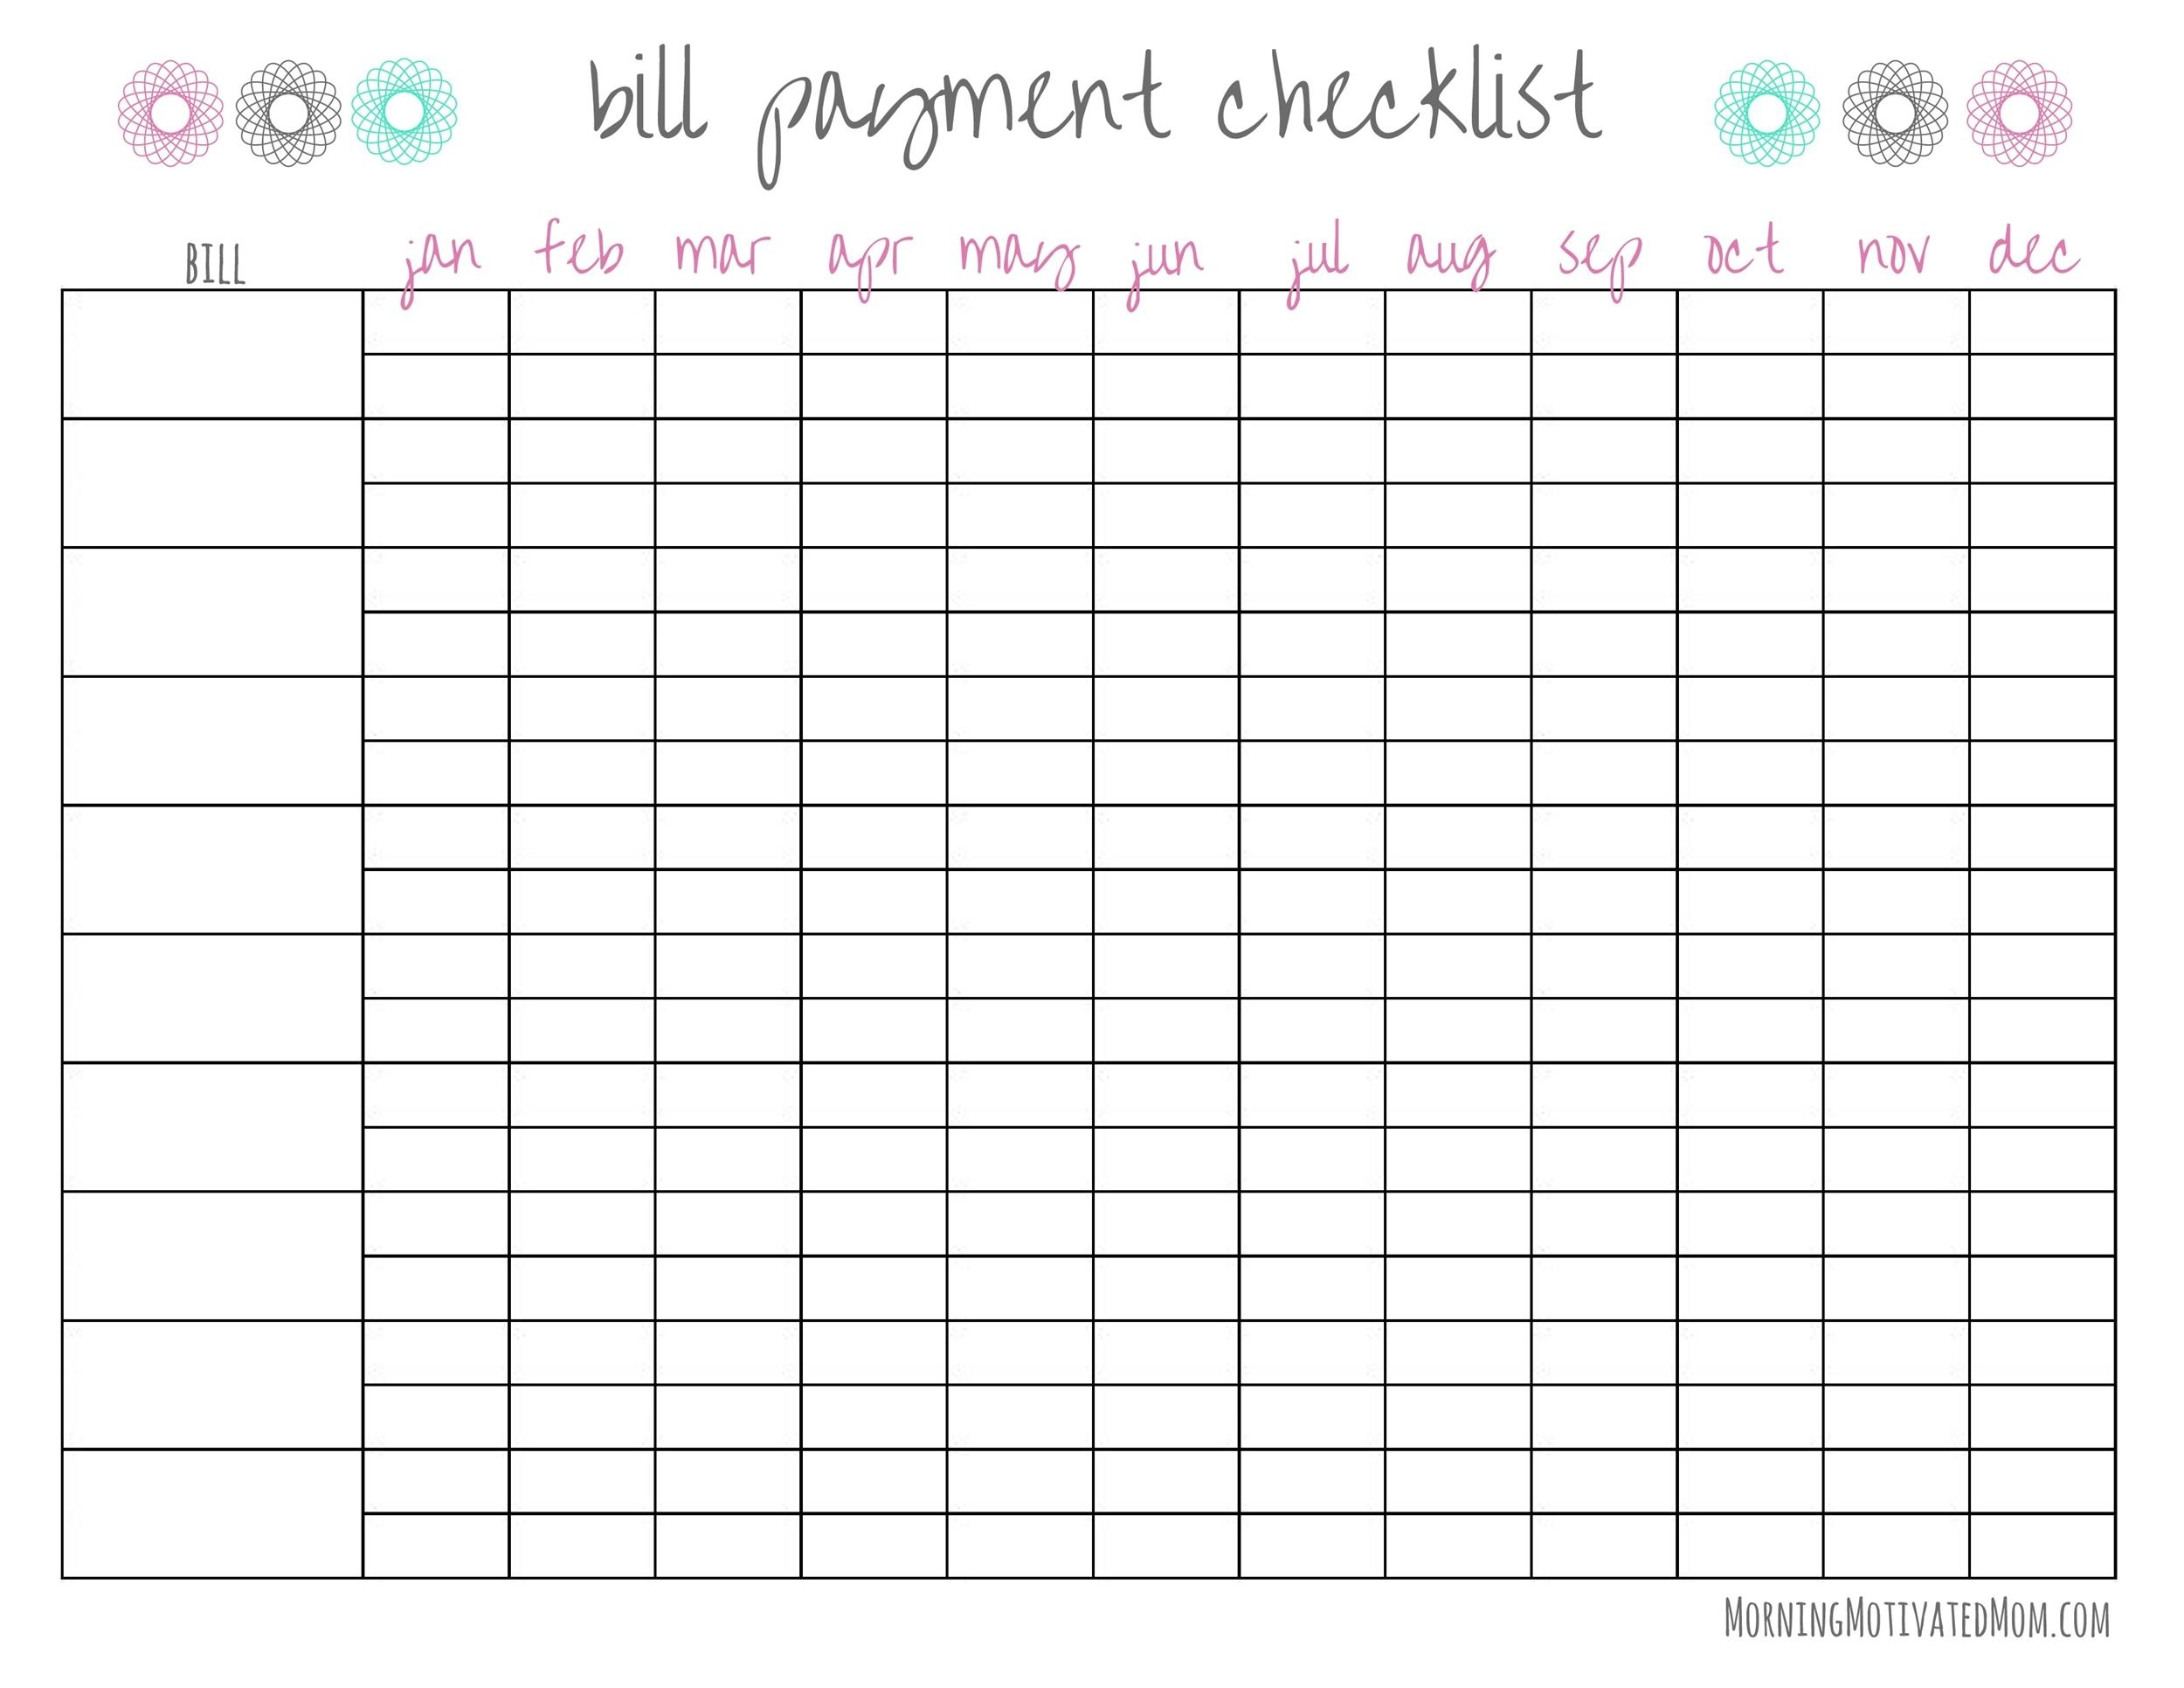 Free Printable Blank Monthly Bill Payment Worksheet